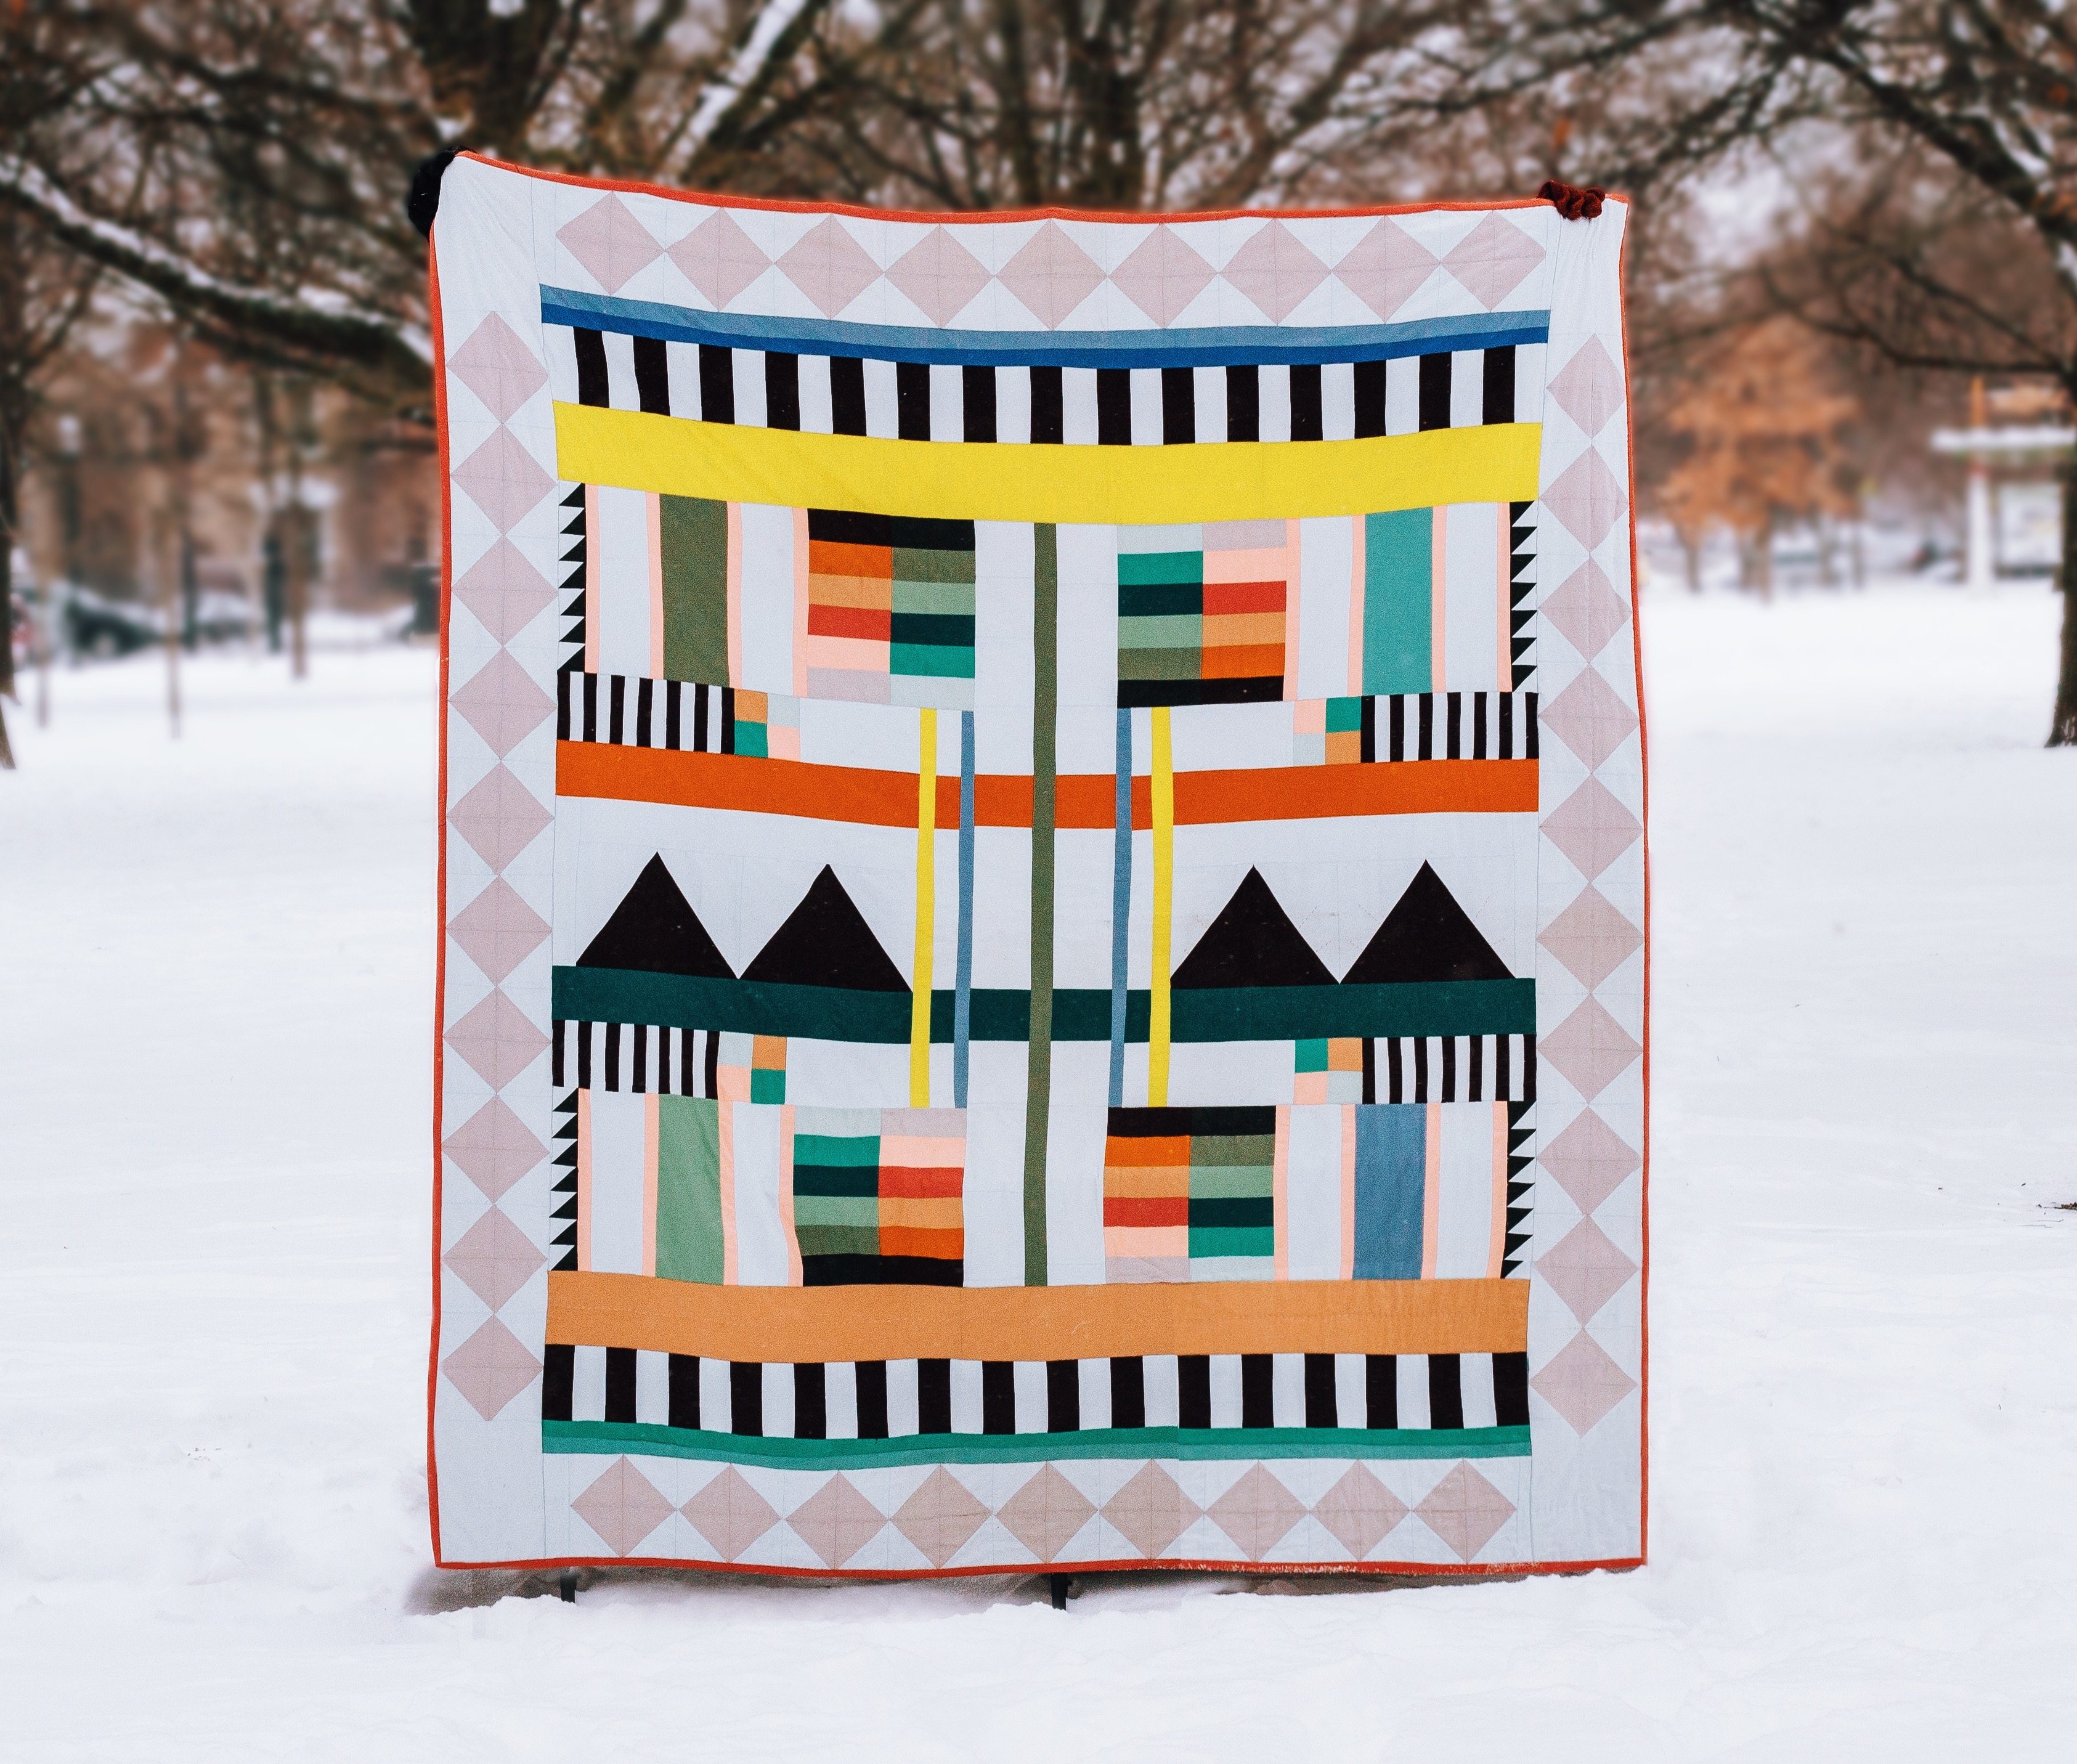 woman holding quilt in snow